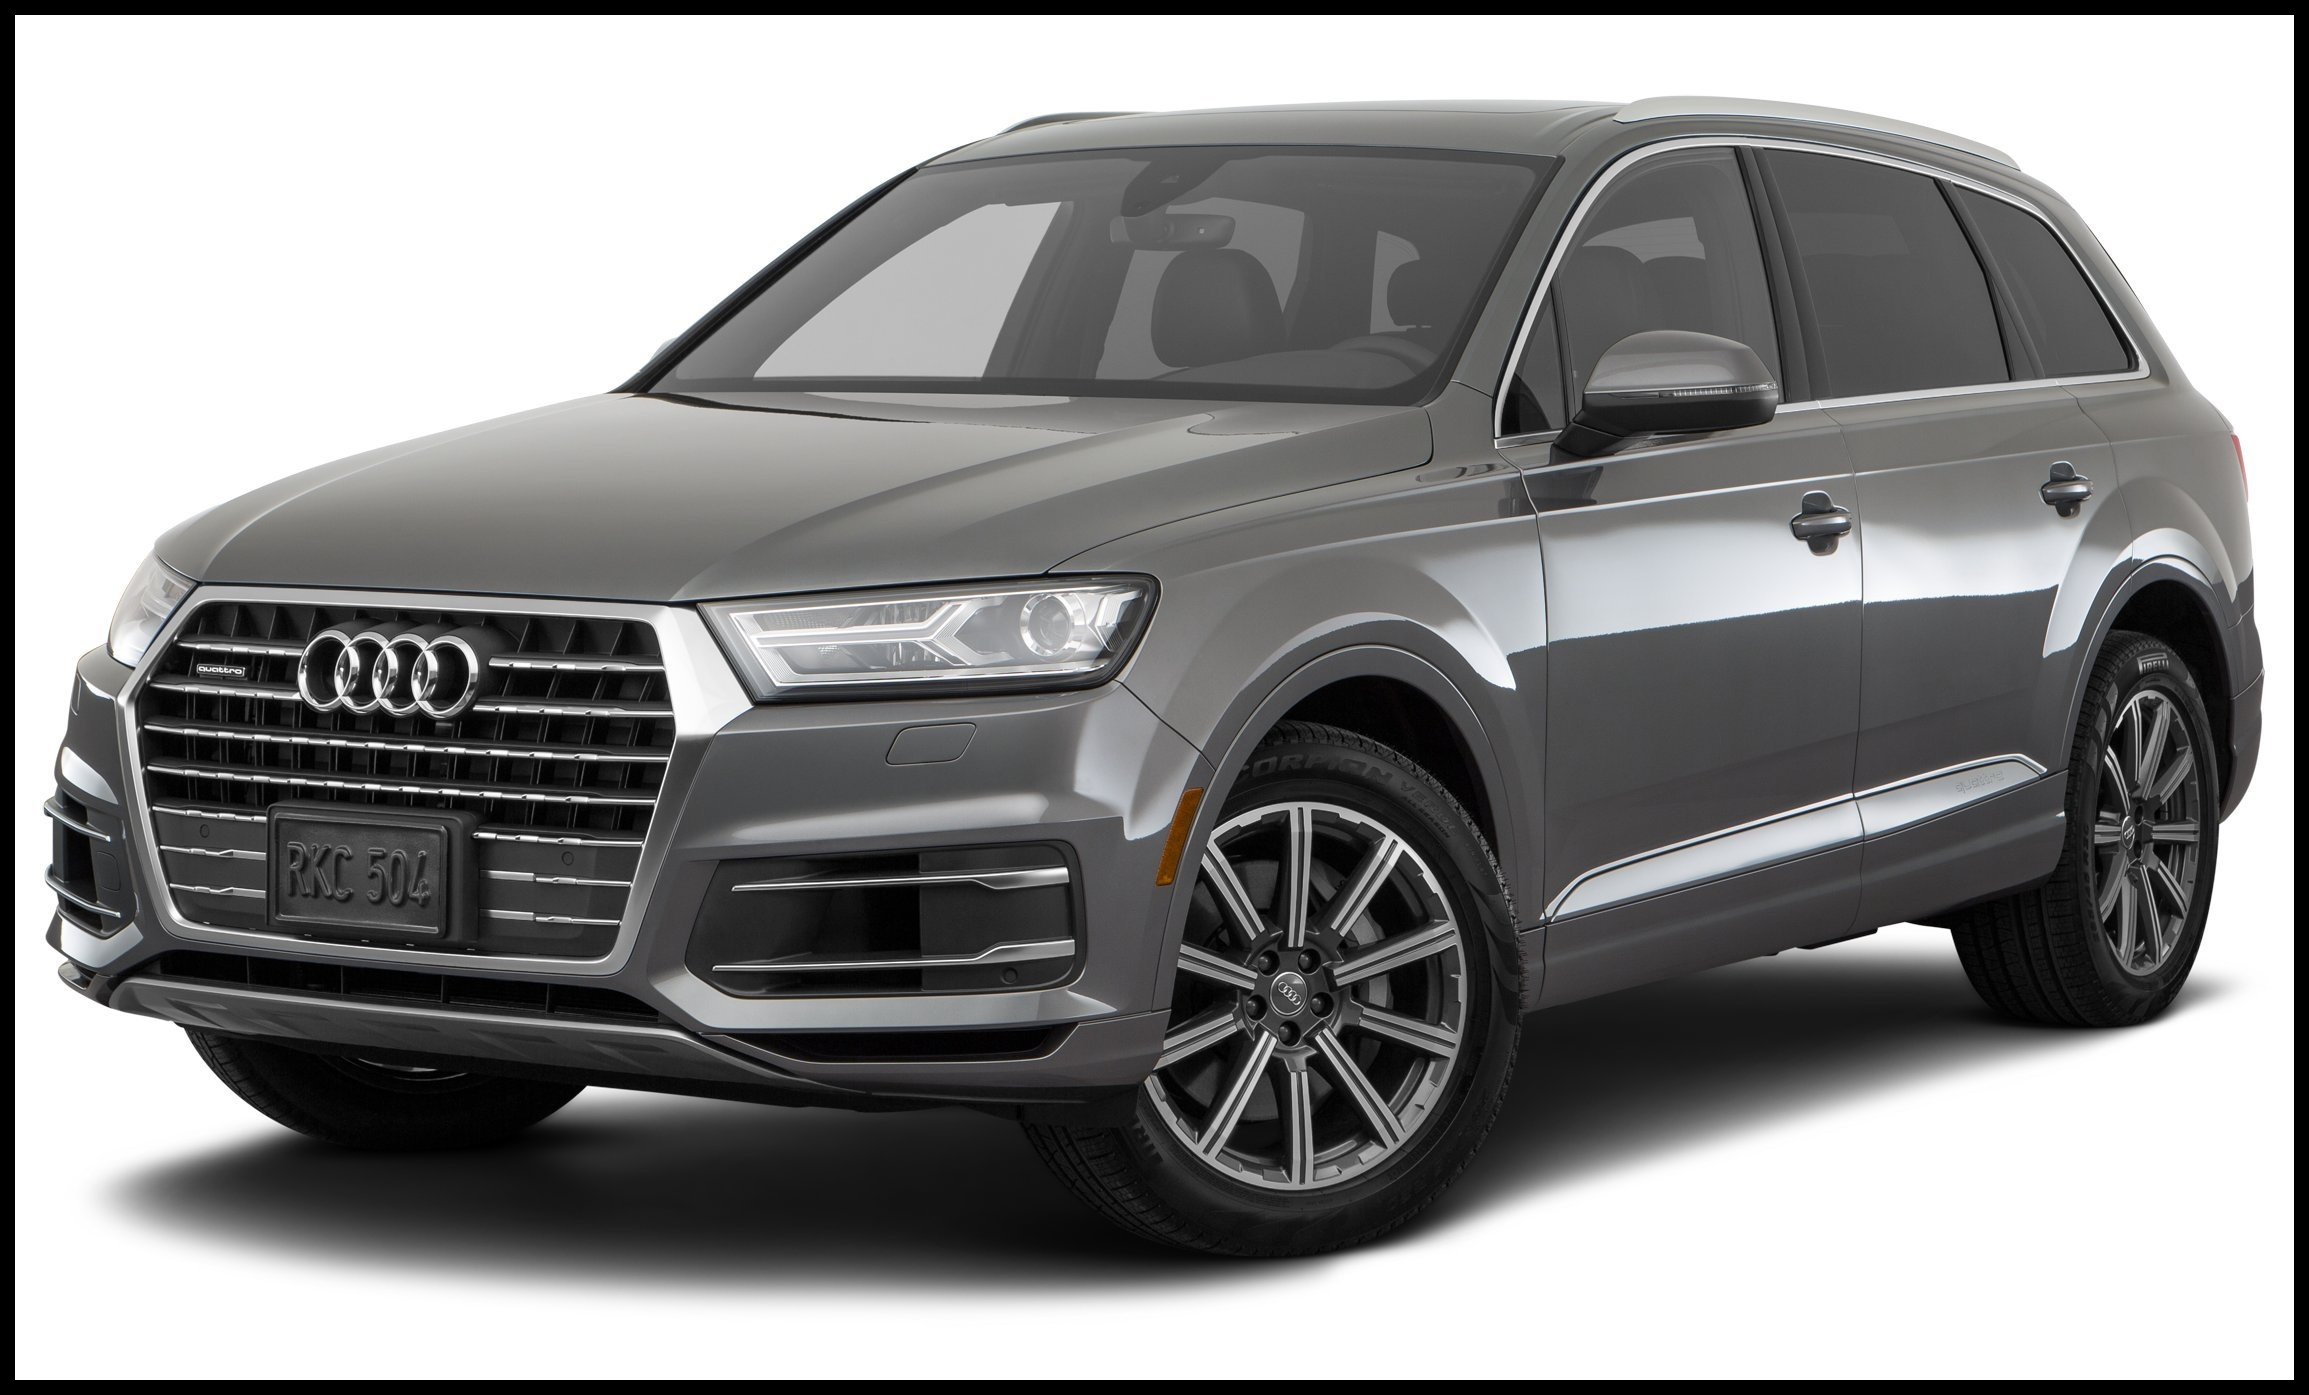 2018 Audi Q7 Review Review Amazon 2018 Audi Q7 Reviews and Specs Vehicles New Release